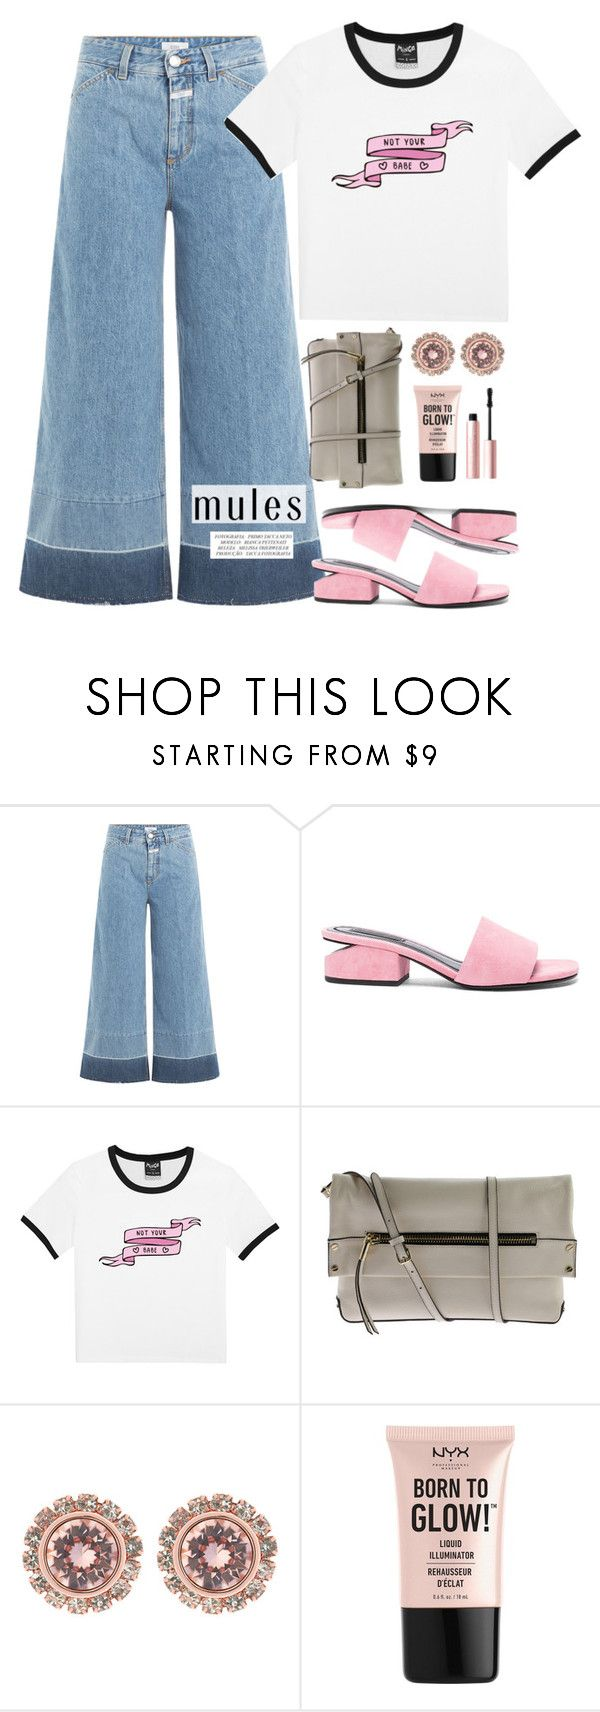 """Pink mules & denim culottes"" by anja-jovanovich ❤ liked on Polyvore featuring Closed, Alexander Wang, Vince Camuto, Ted Baker, NYX and Too Faced Cosmetics"